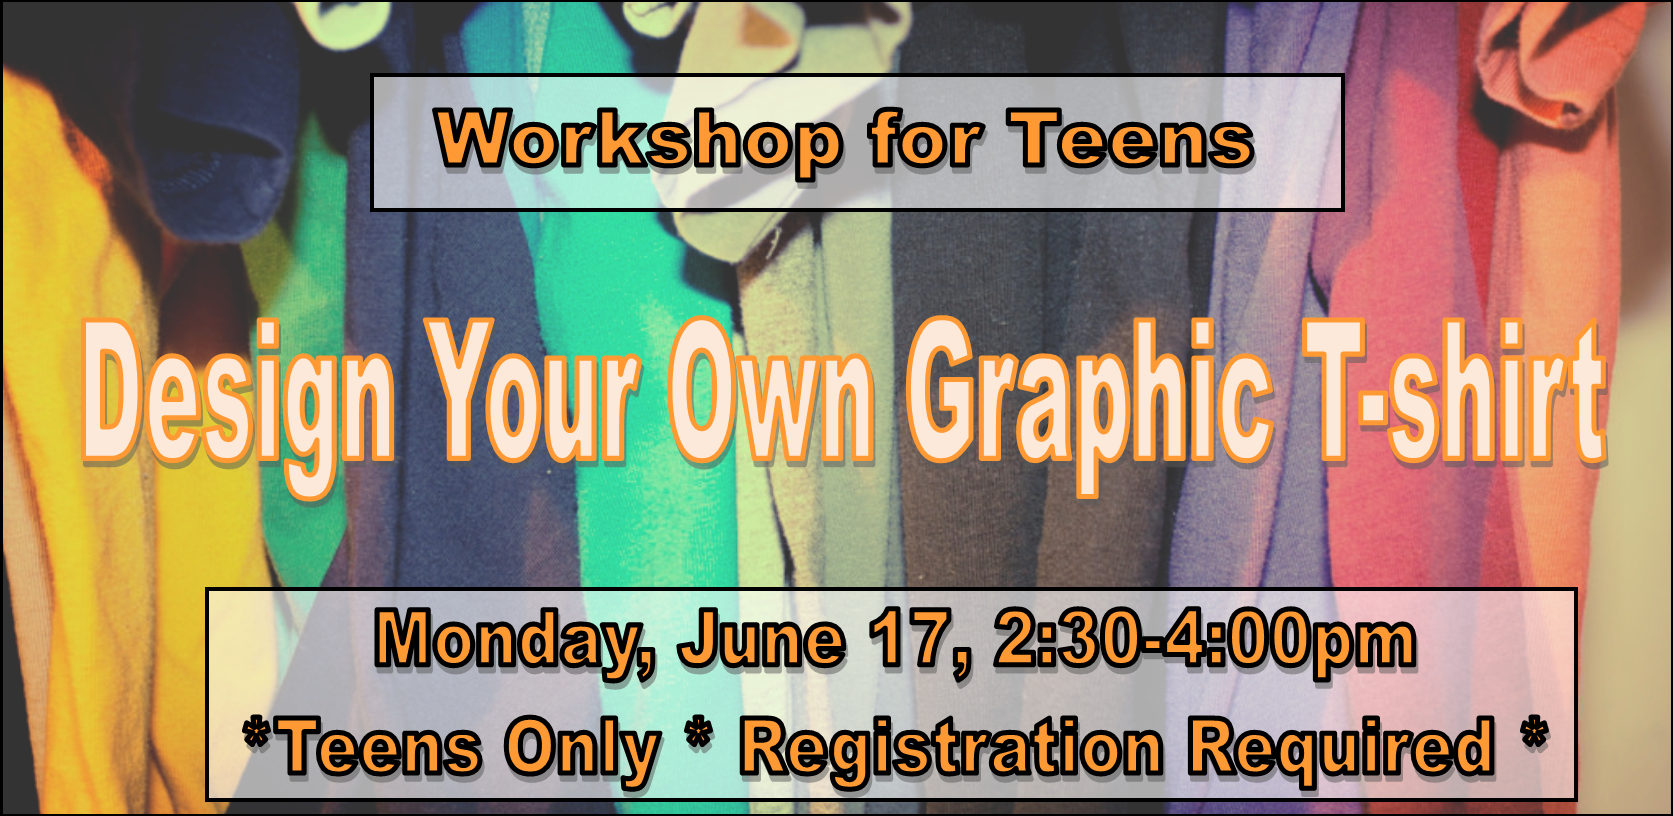 Design Your Own Graphic T-Shirt Workshop